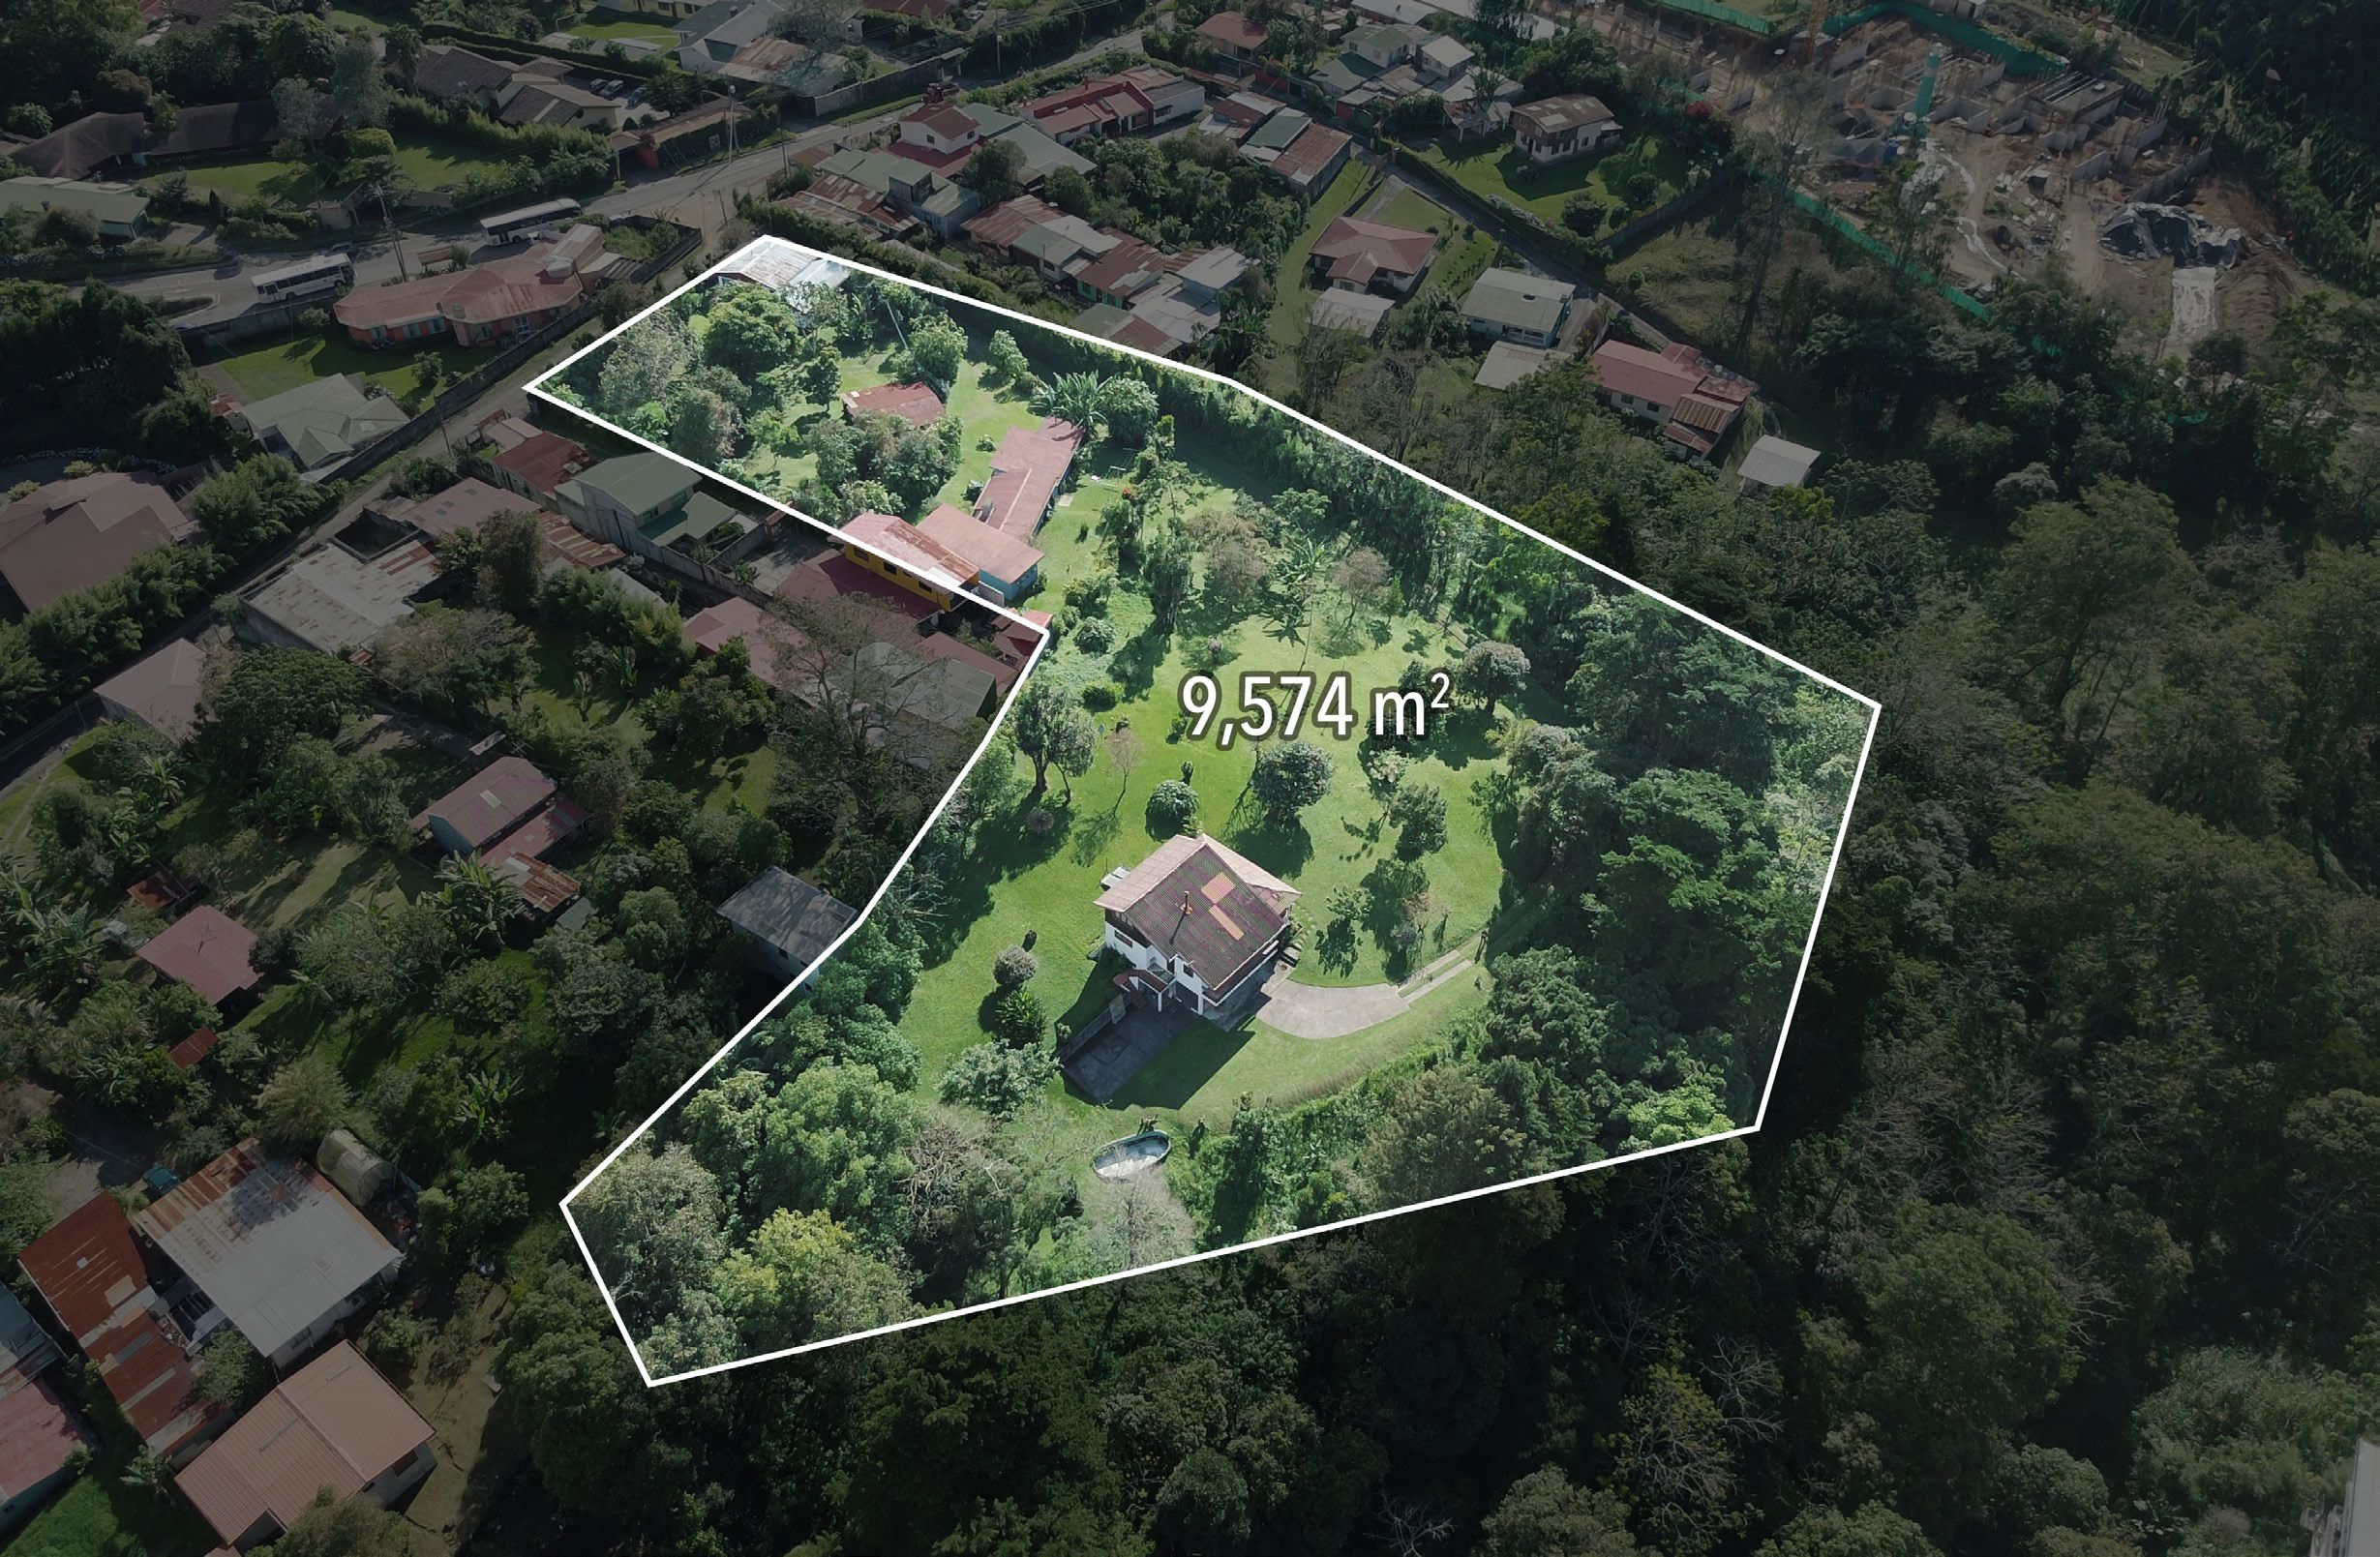 2.5-Acre Property for Sale, Ideal for Condo Development, San Rafael, Montes de Oca